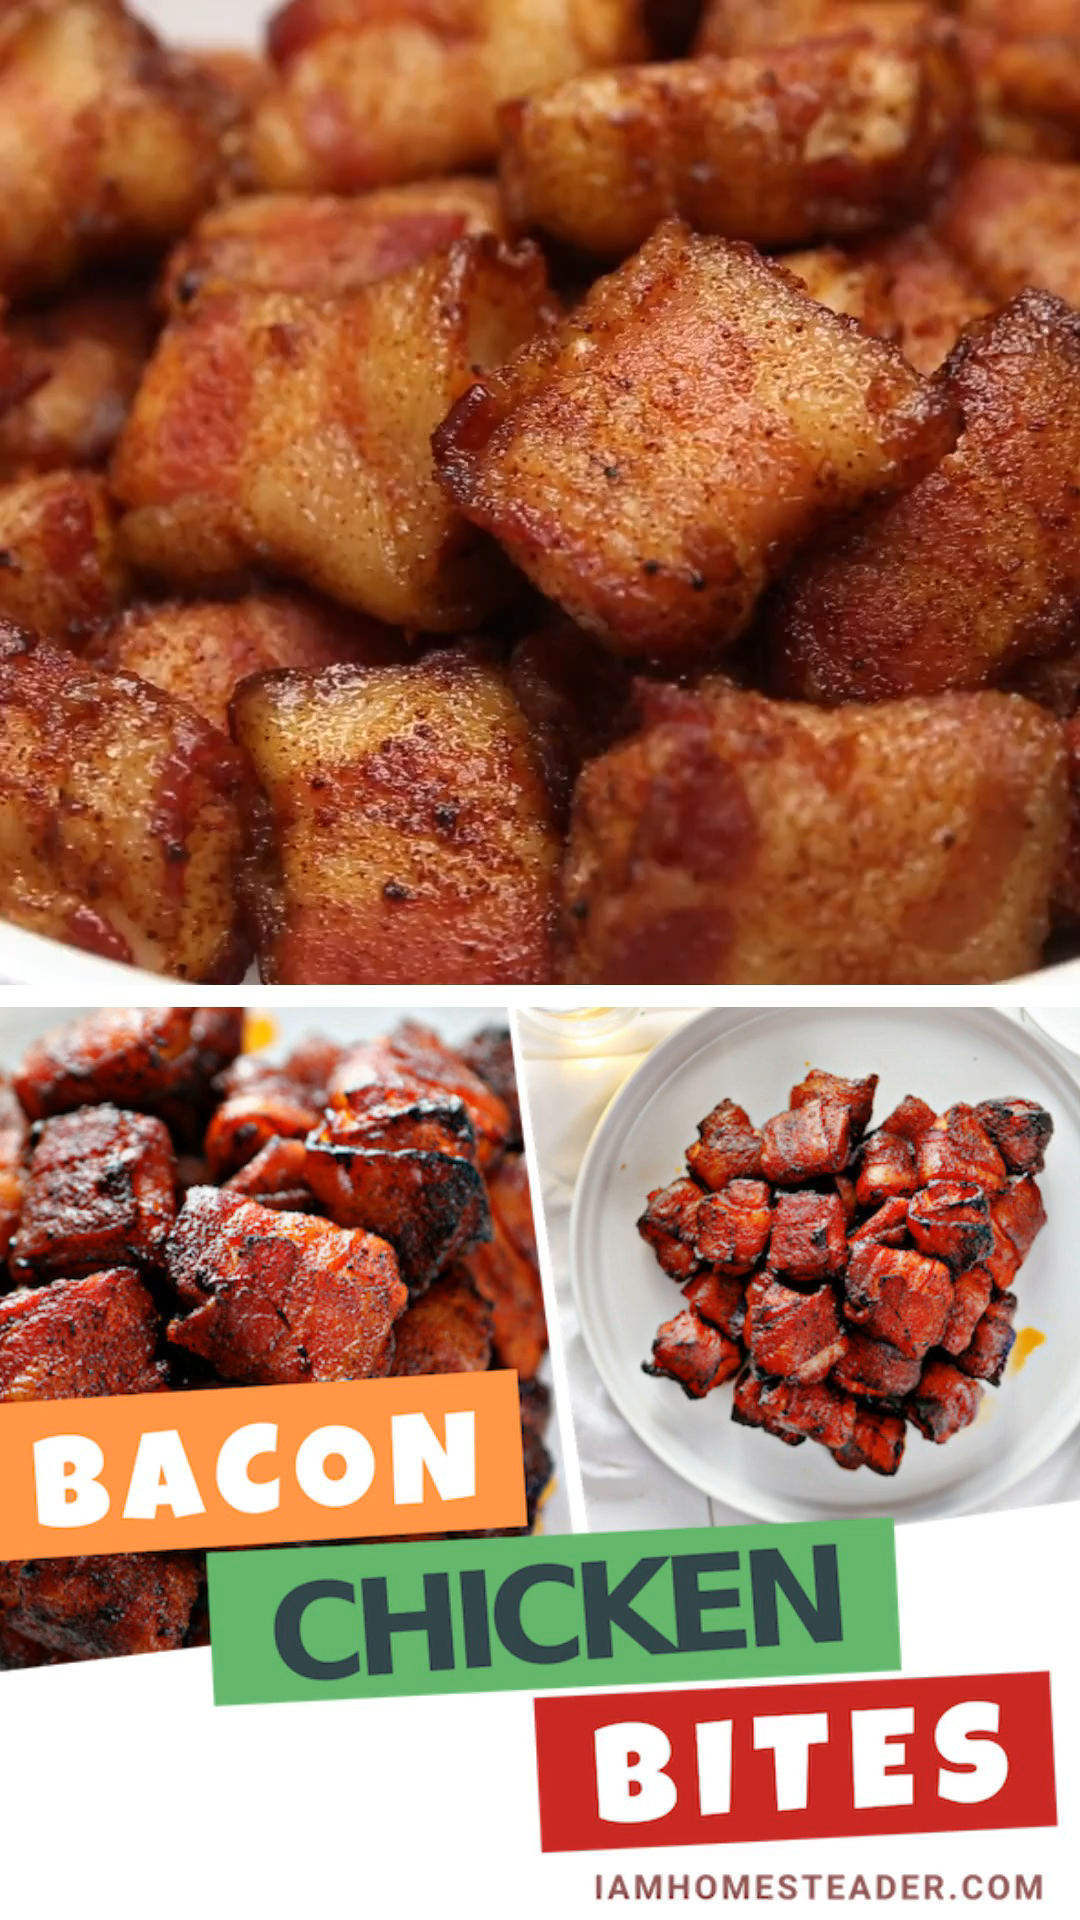 Bacon Chicken Bites